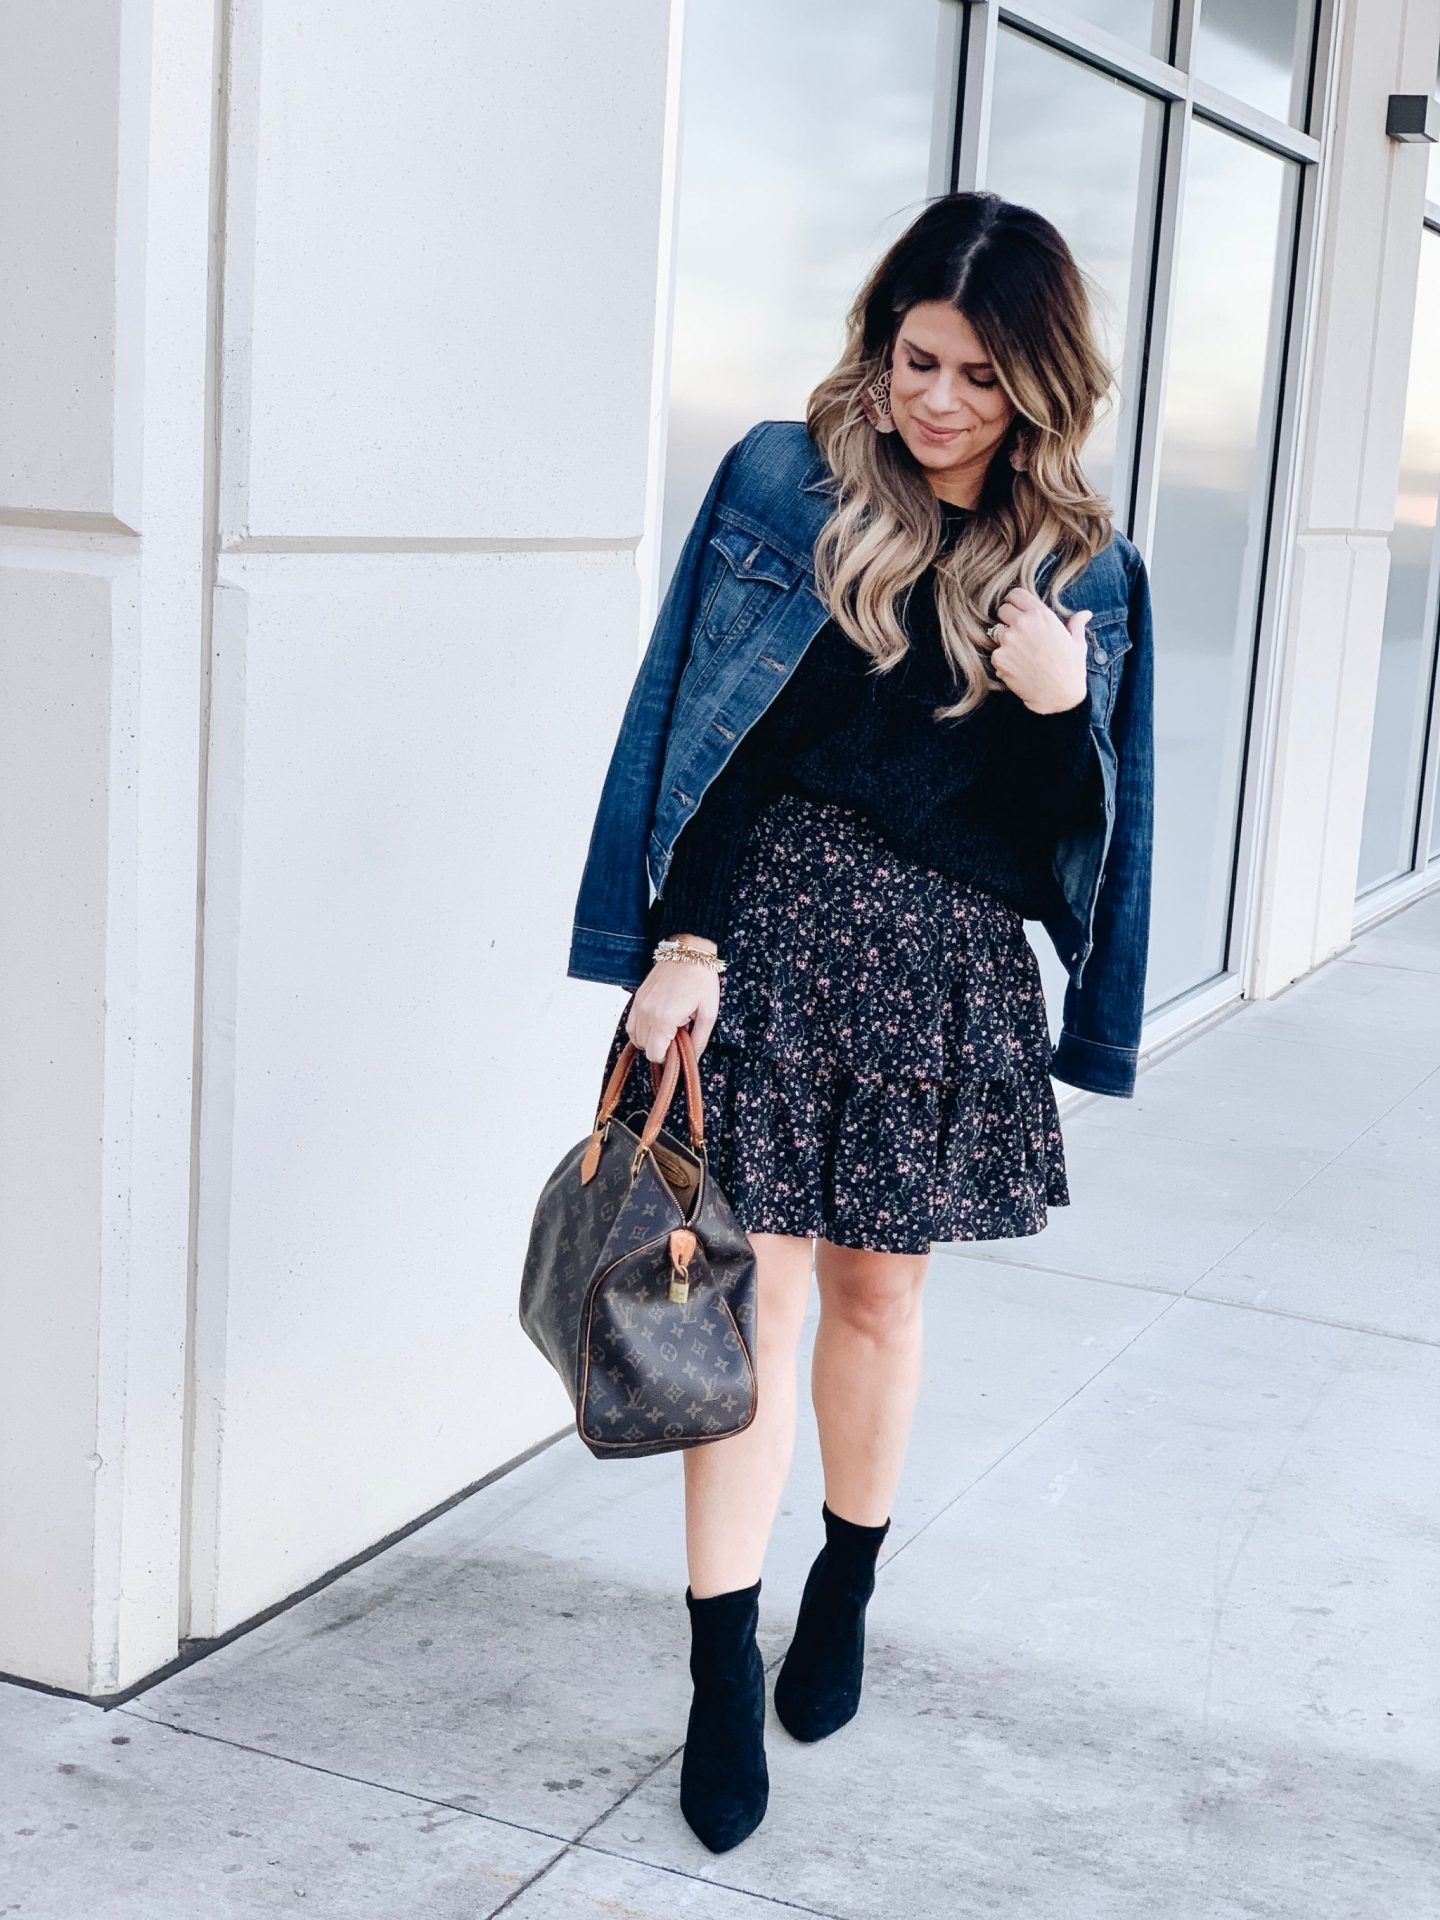 How To Style A Ruffle Skirt, How to Style Sock Booties, Speedy 35, Louis Vuitton, How to Style a Denim Jacket, Date Night Style, Statement Earrings, Stella & Dot